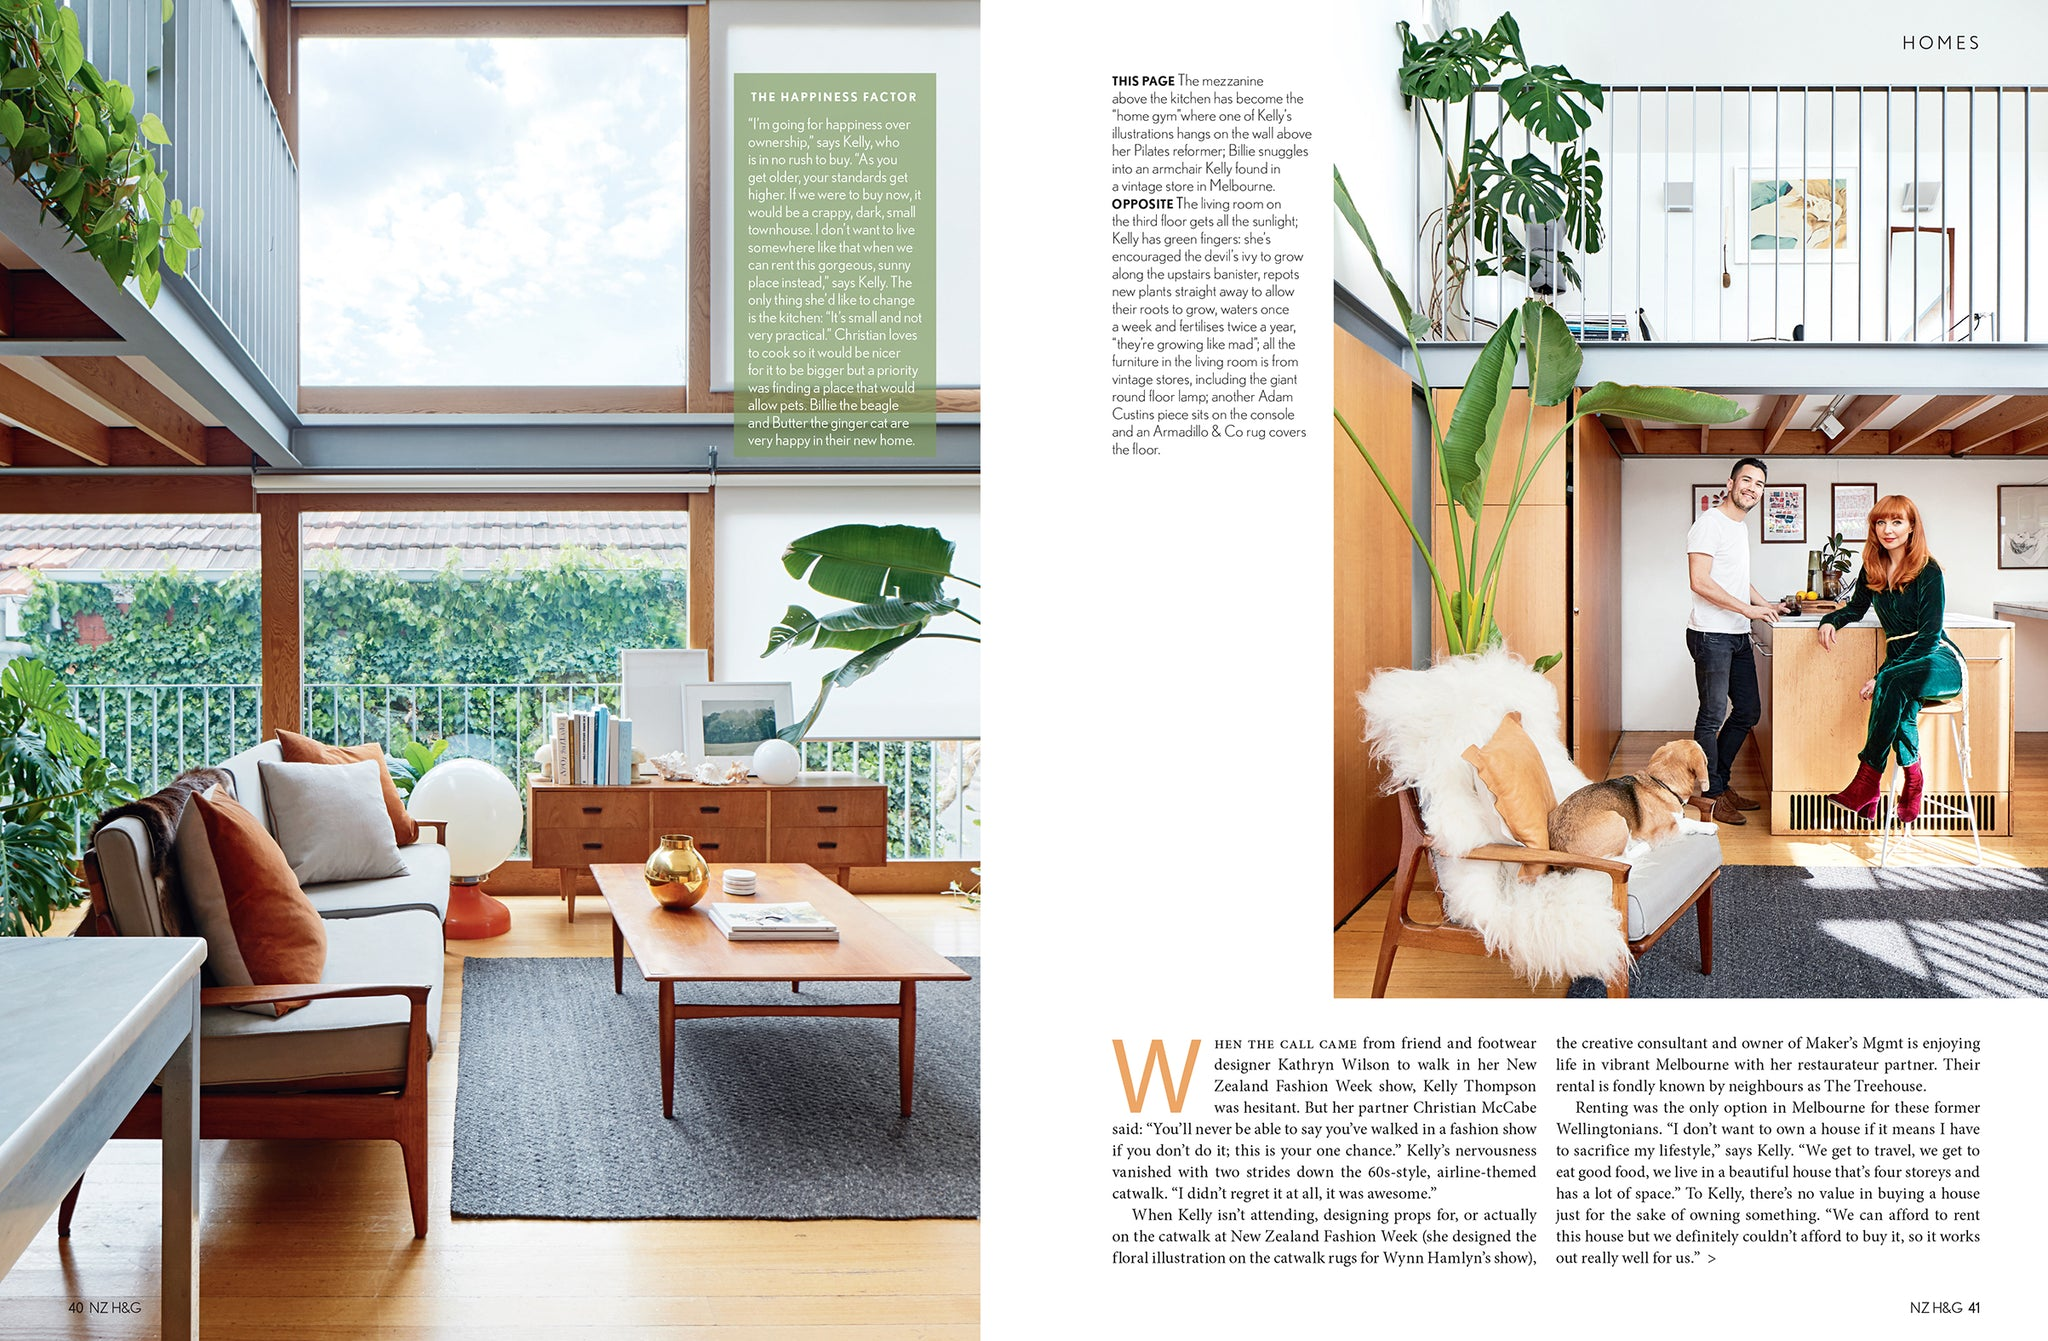 Illustrator Kelly Thompson Melbourne Home Interior decoration New Zealand Home and Garden Magazine